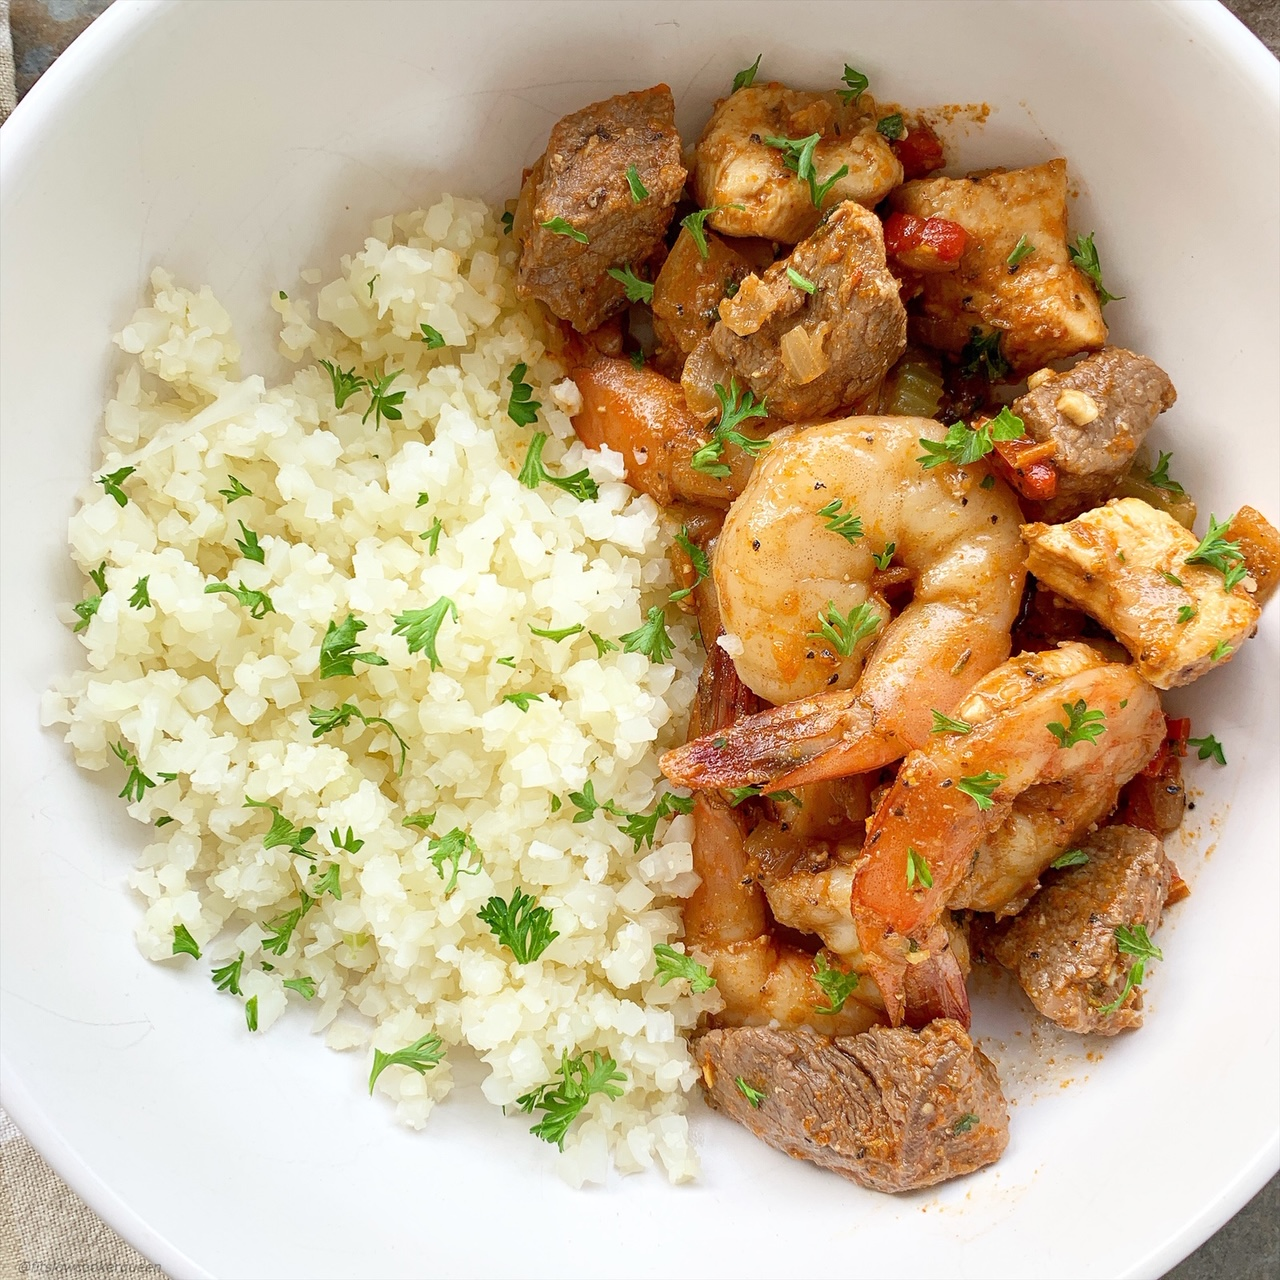 Cajun spices cook with a combination of shrimp, steak, and chicken in thislow-carb, paleo, and whole30 recipe. Make this quick and healthy Creole-inspired meal in less than 30 minutes.